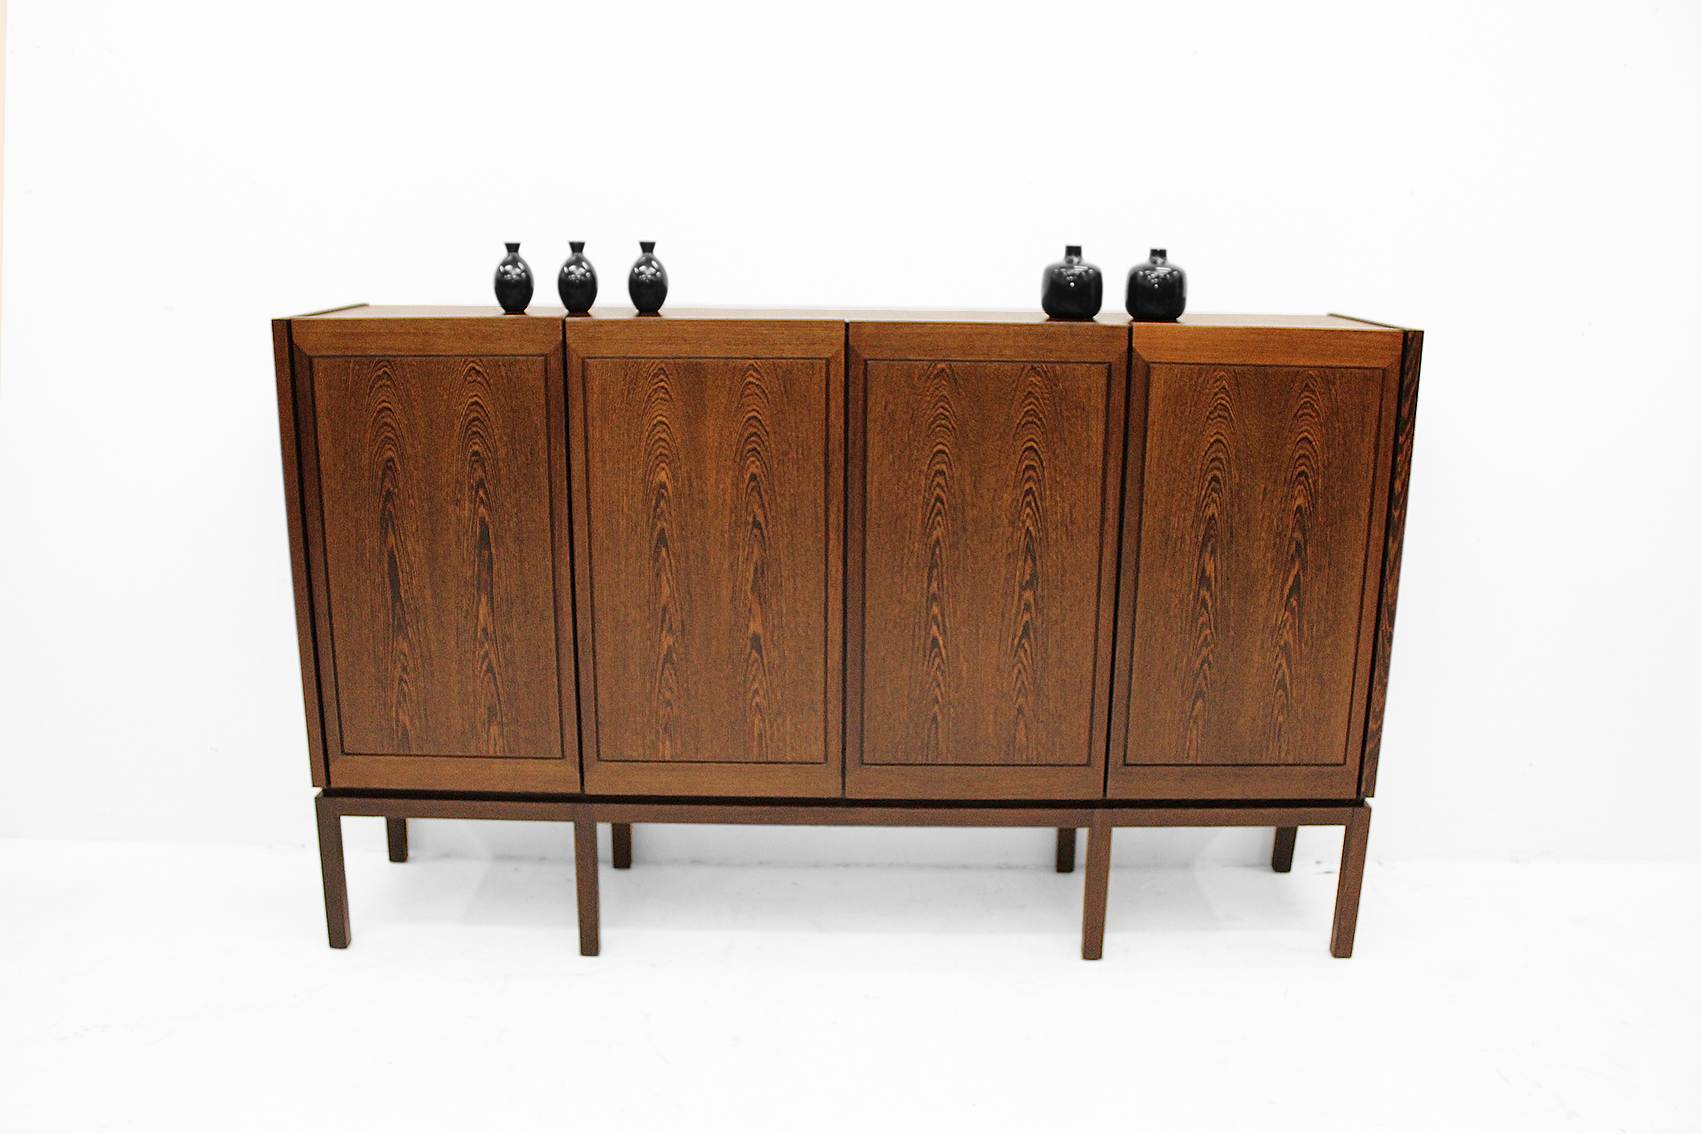 Belgian highboard in Wengé produced by Durlet. Early seventies